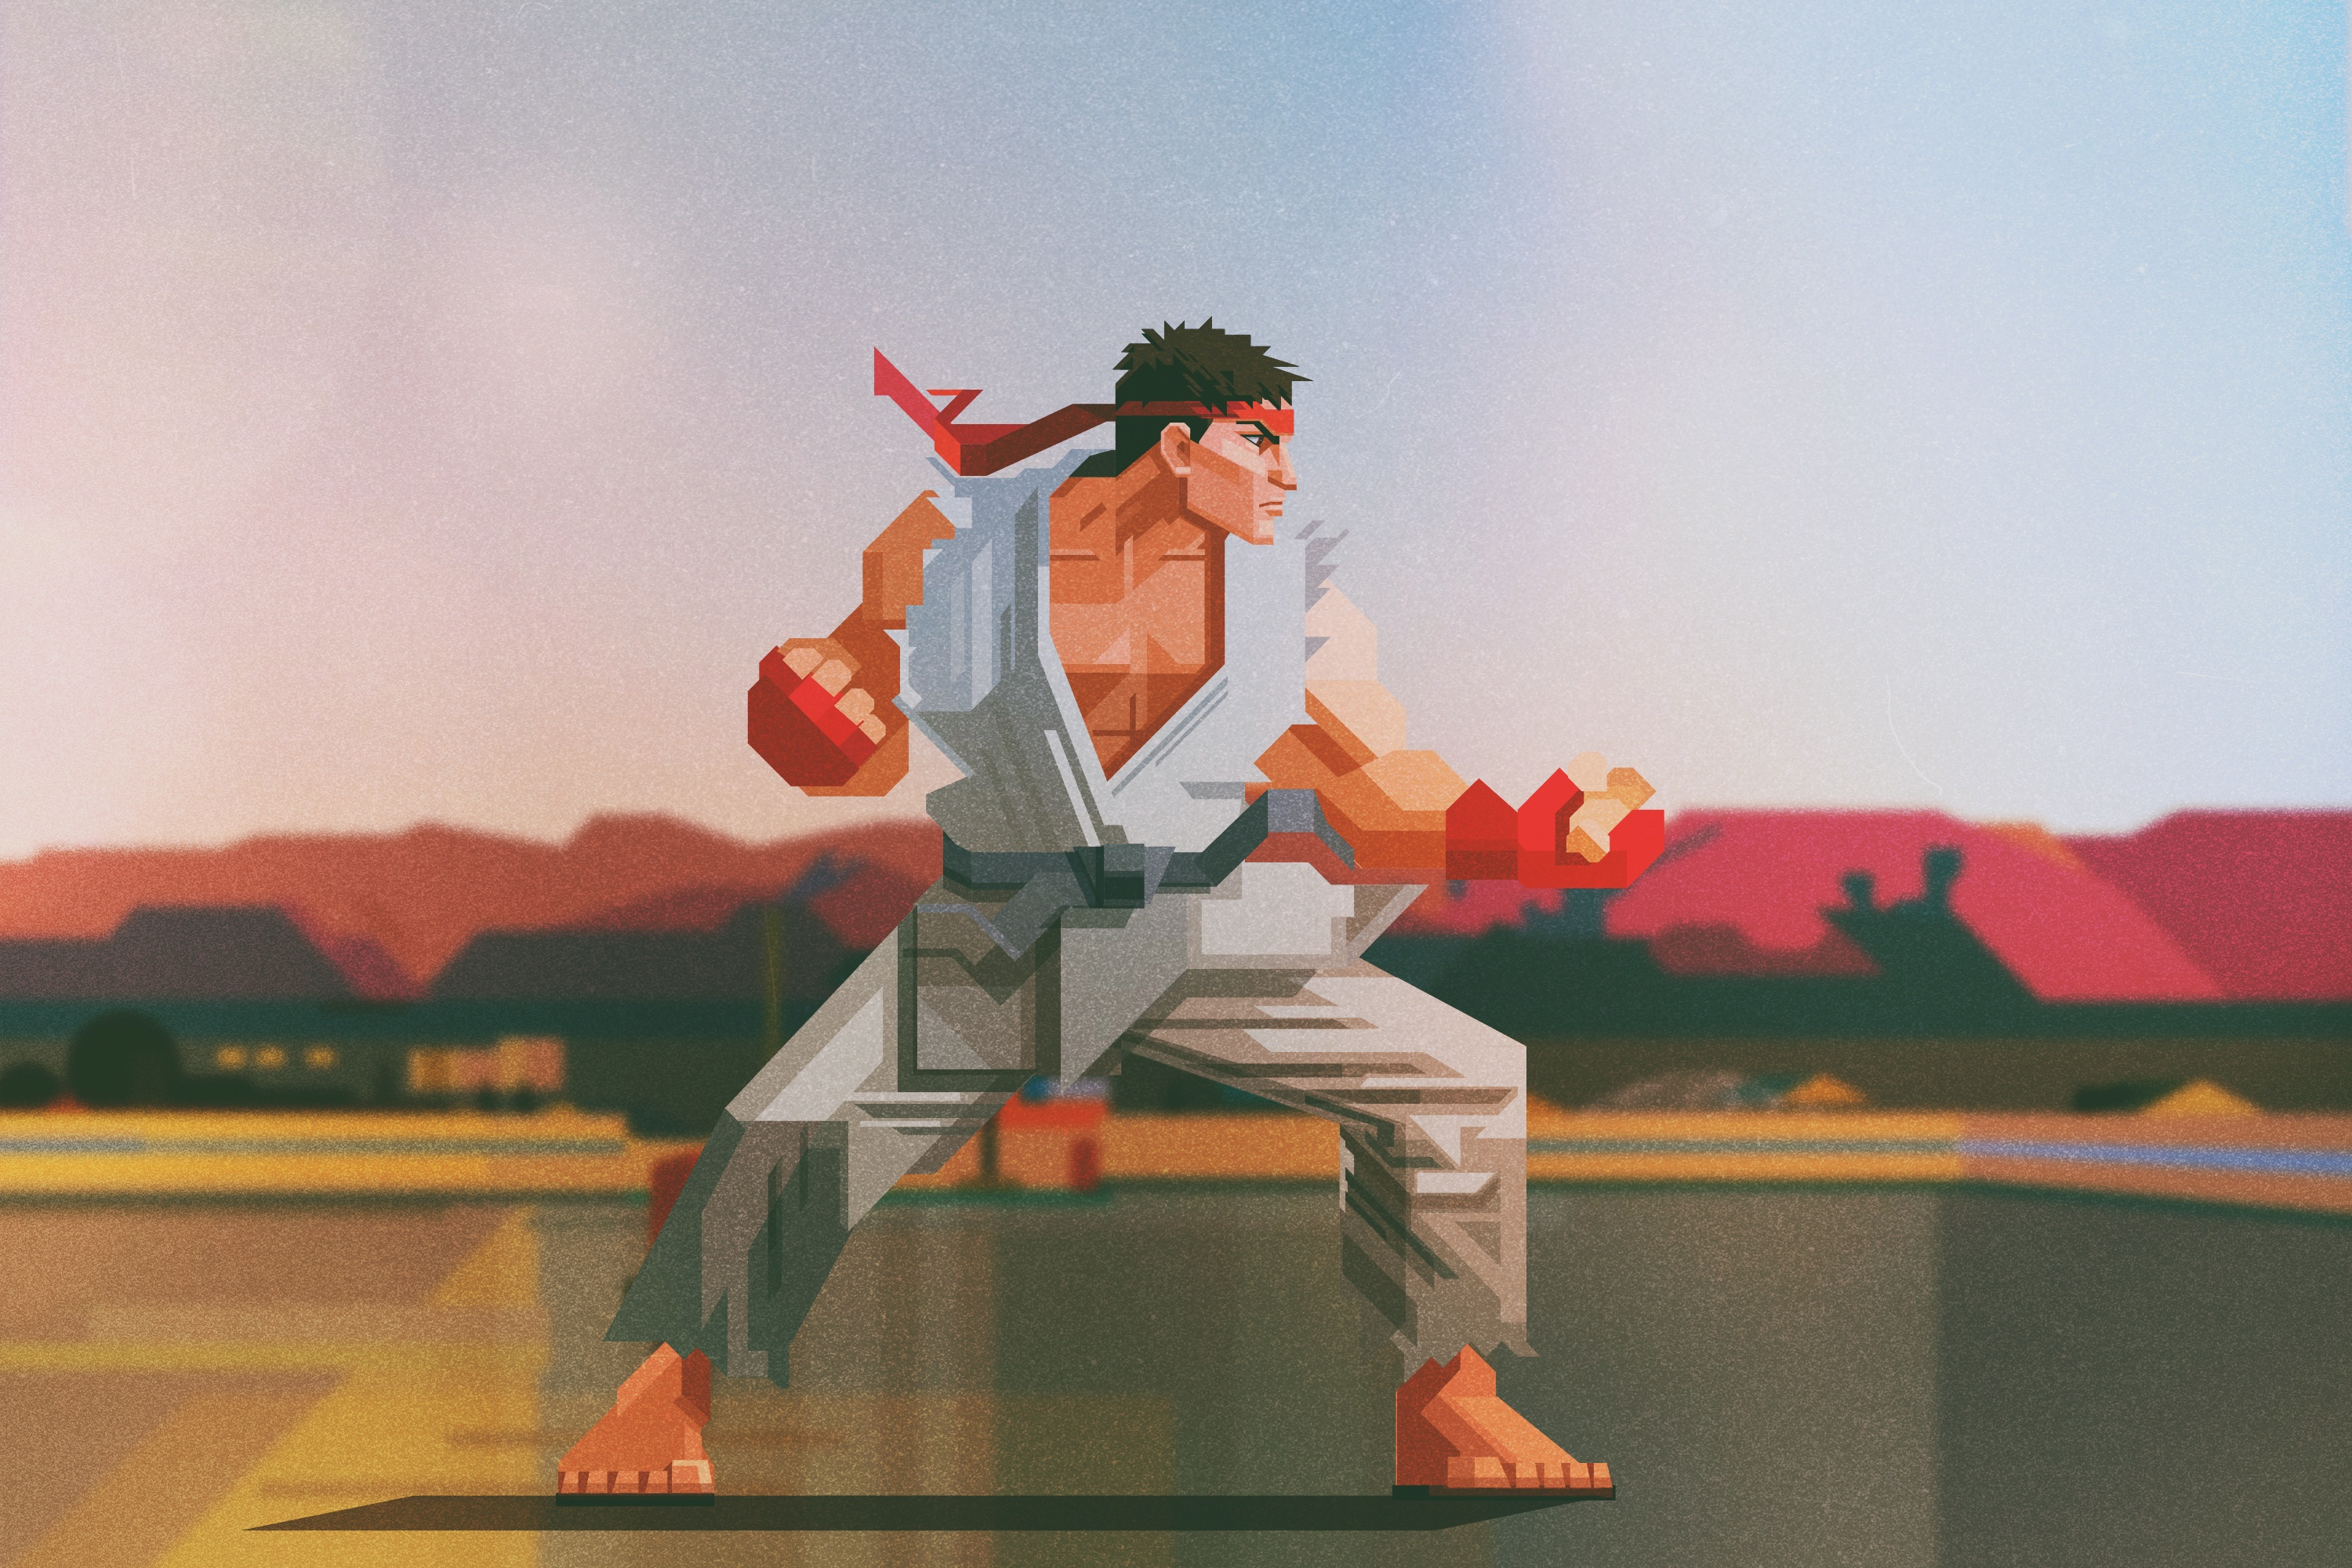 A stylized illustration of Ryu from Street Fighter